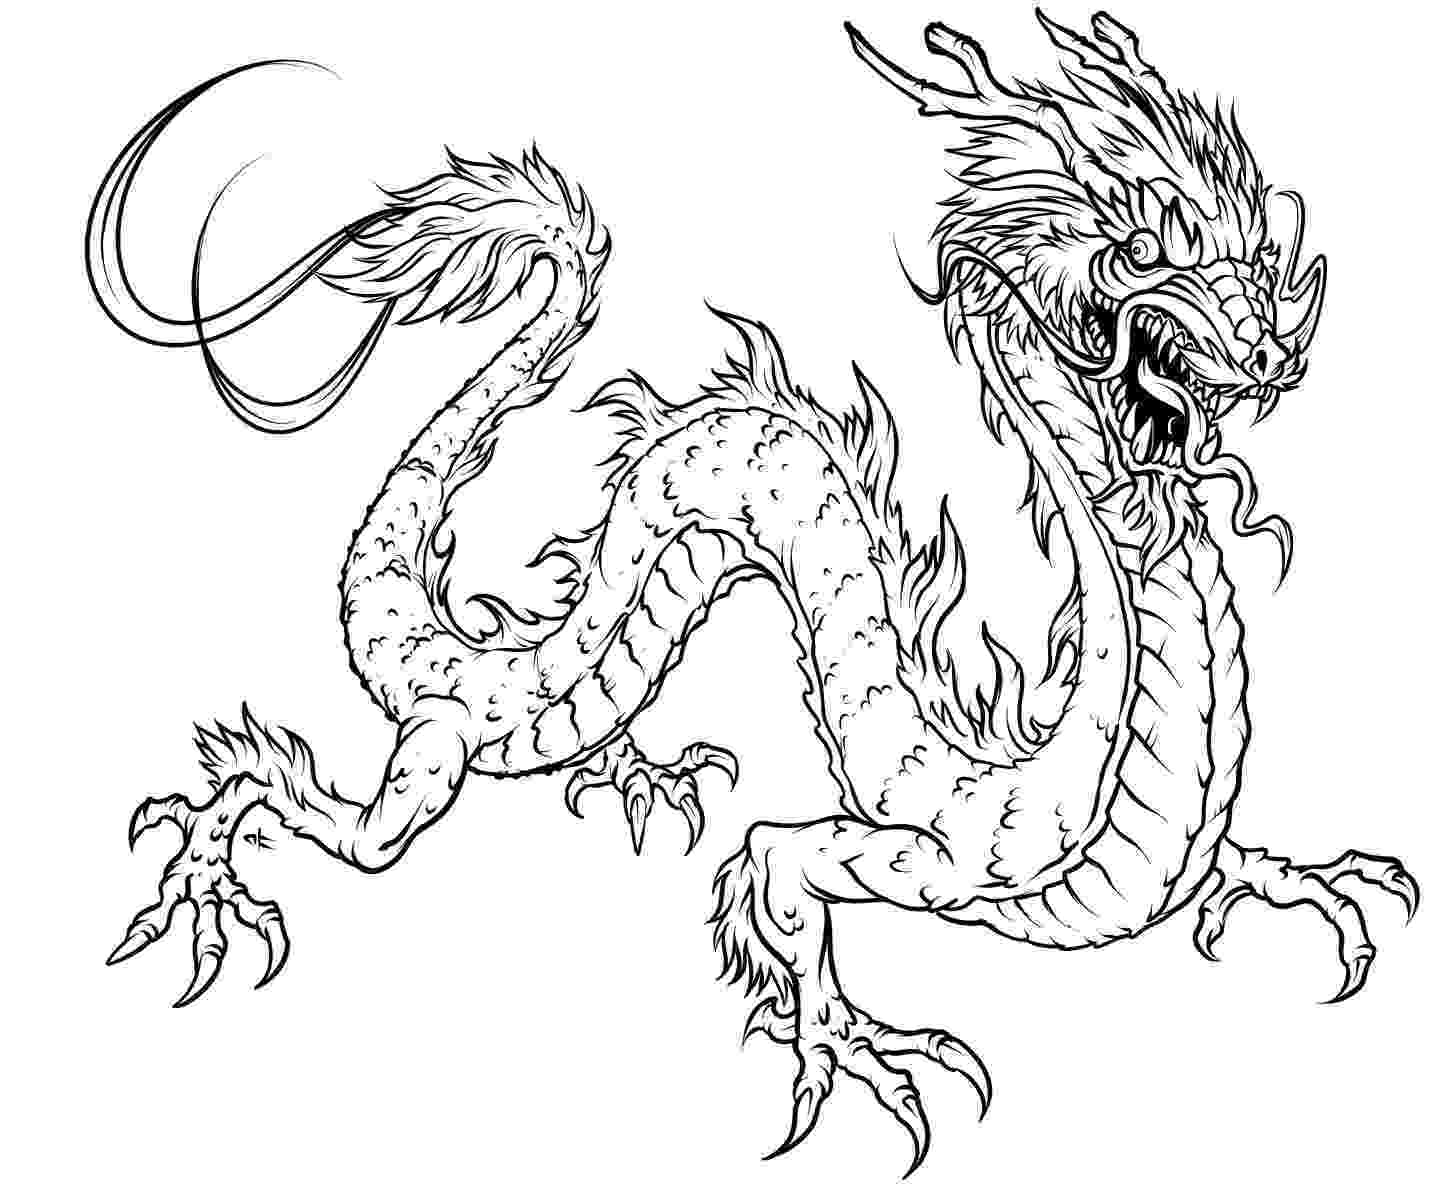 dragon images to color dragon coloring pages realistic 25387 bestofcoloringcom color dragon images to